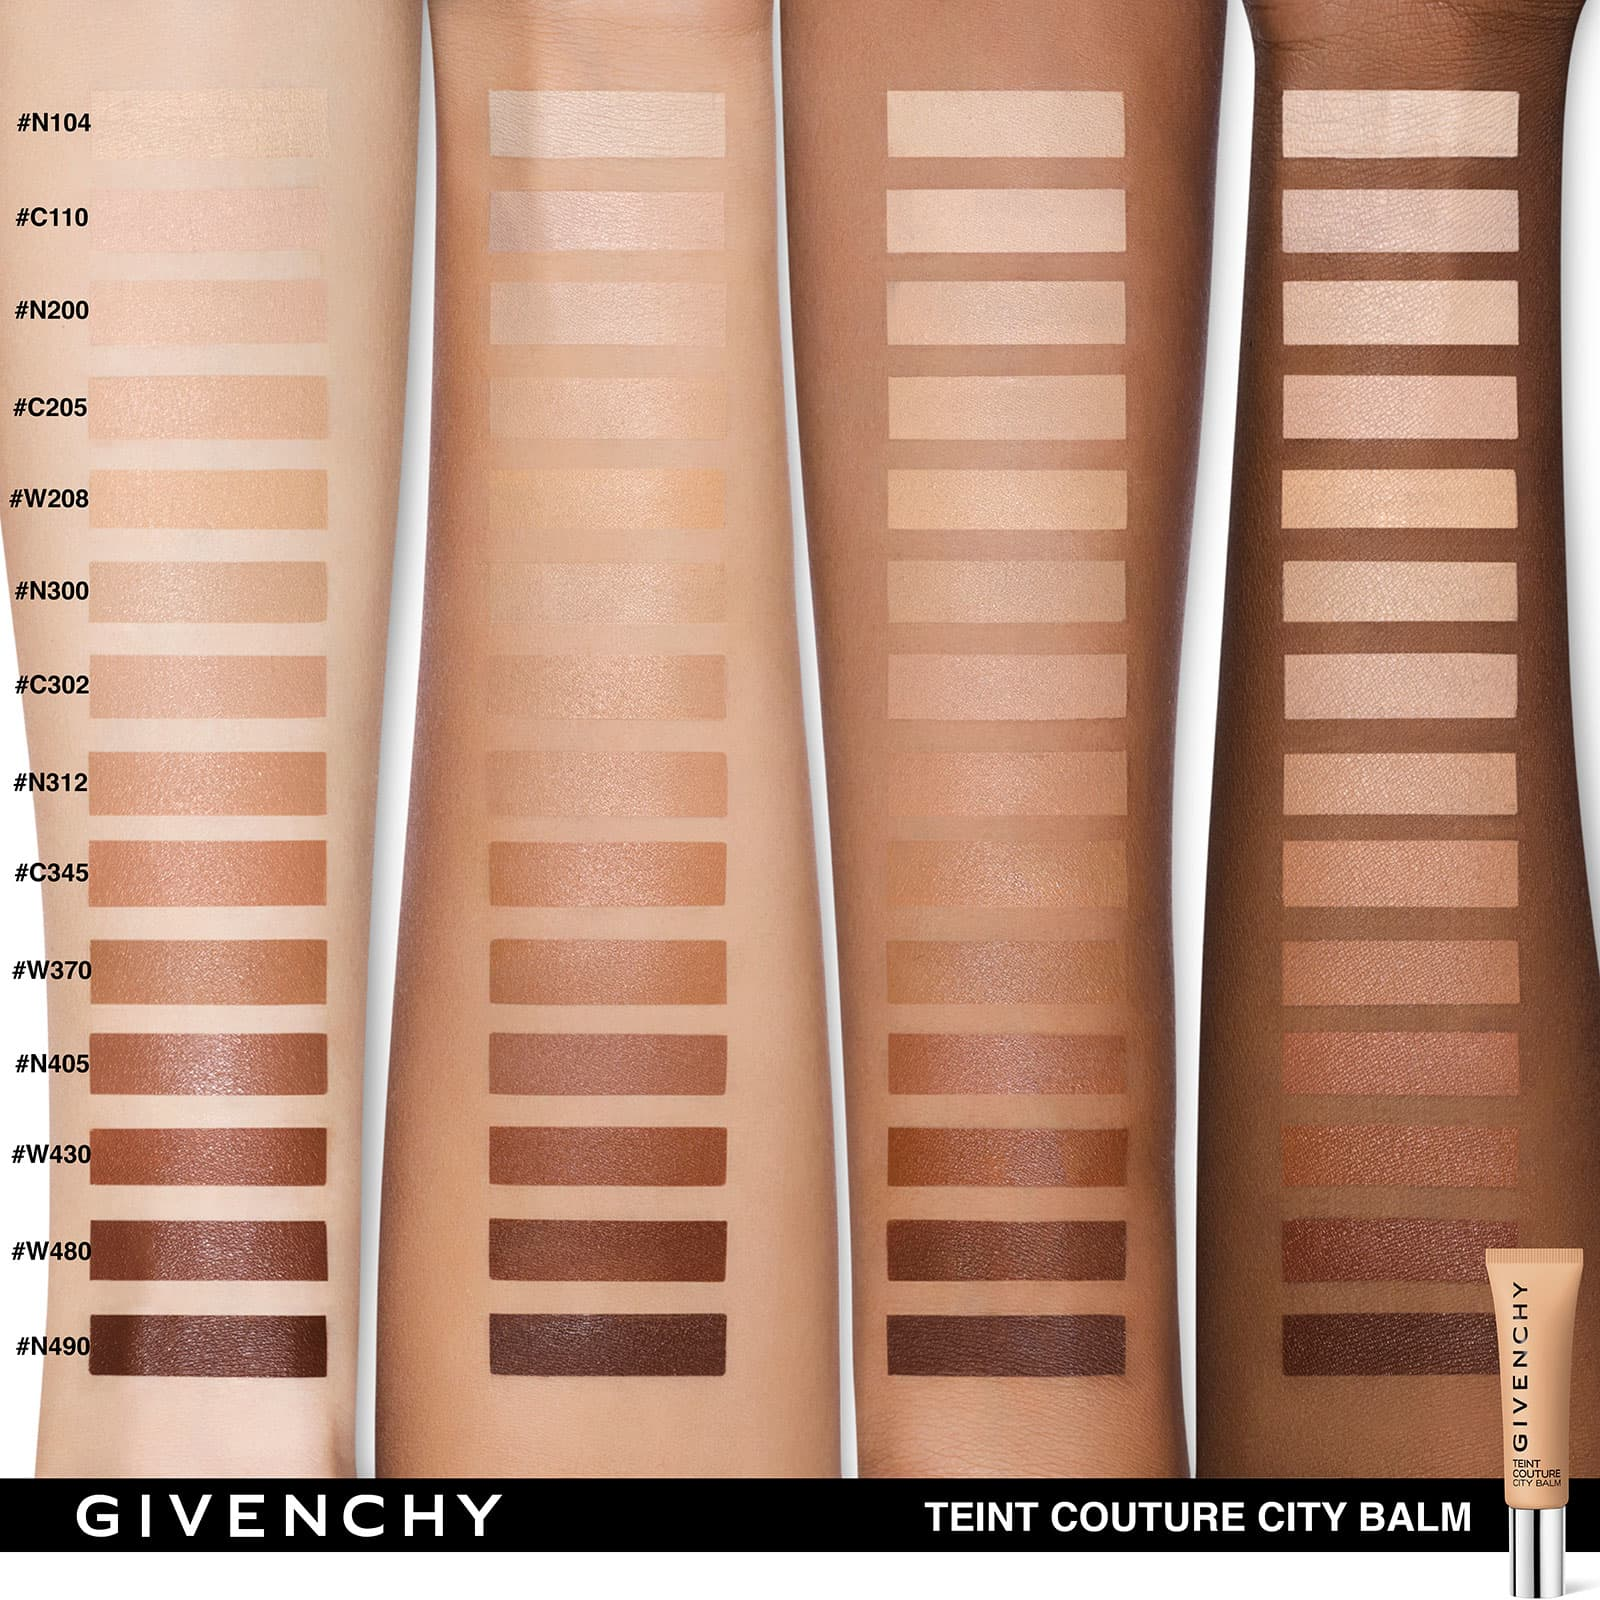 Givenchy Teint Couture City Balm Foundation